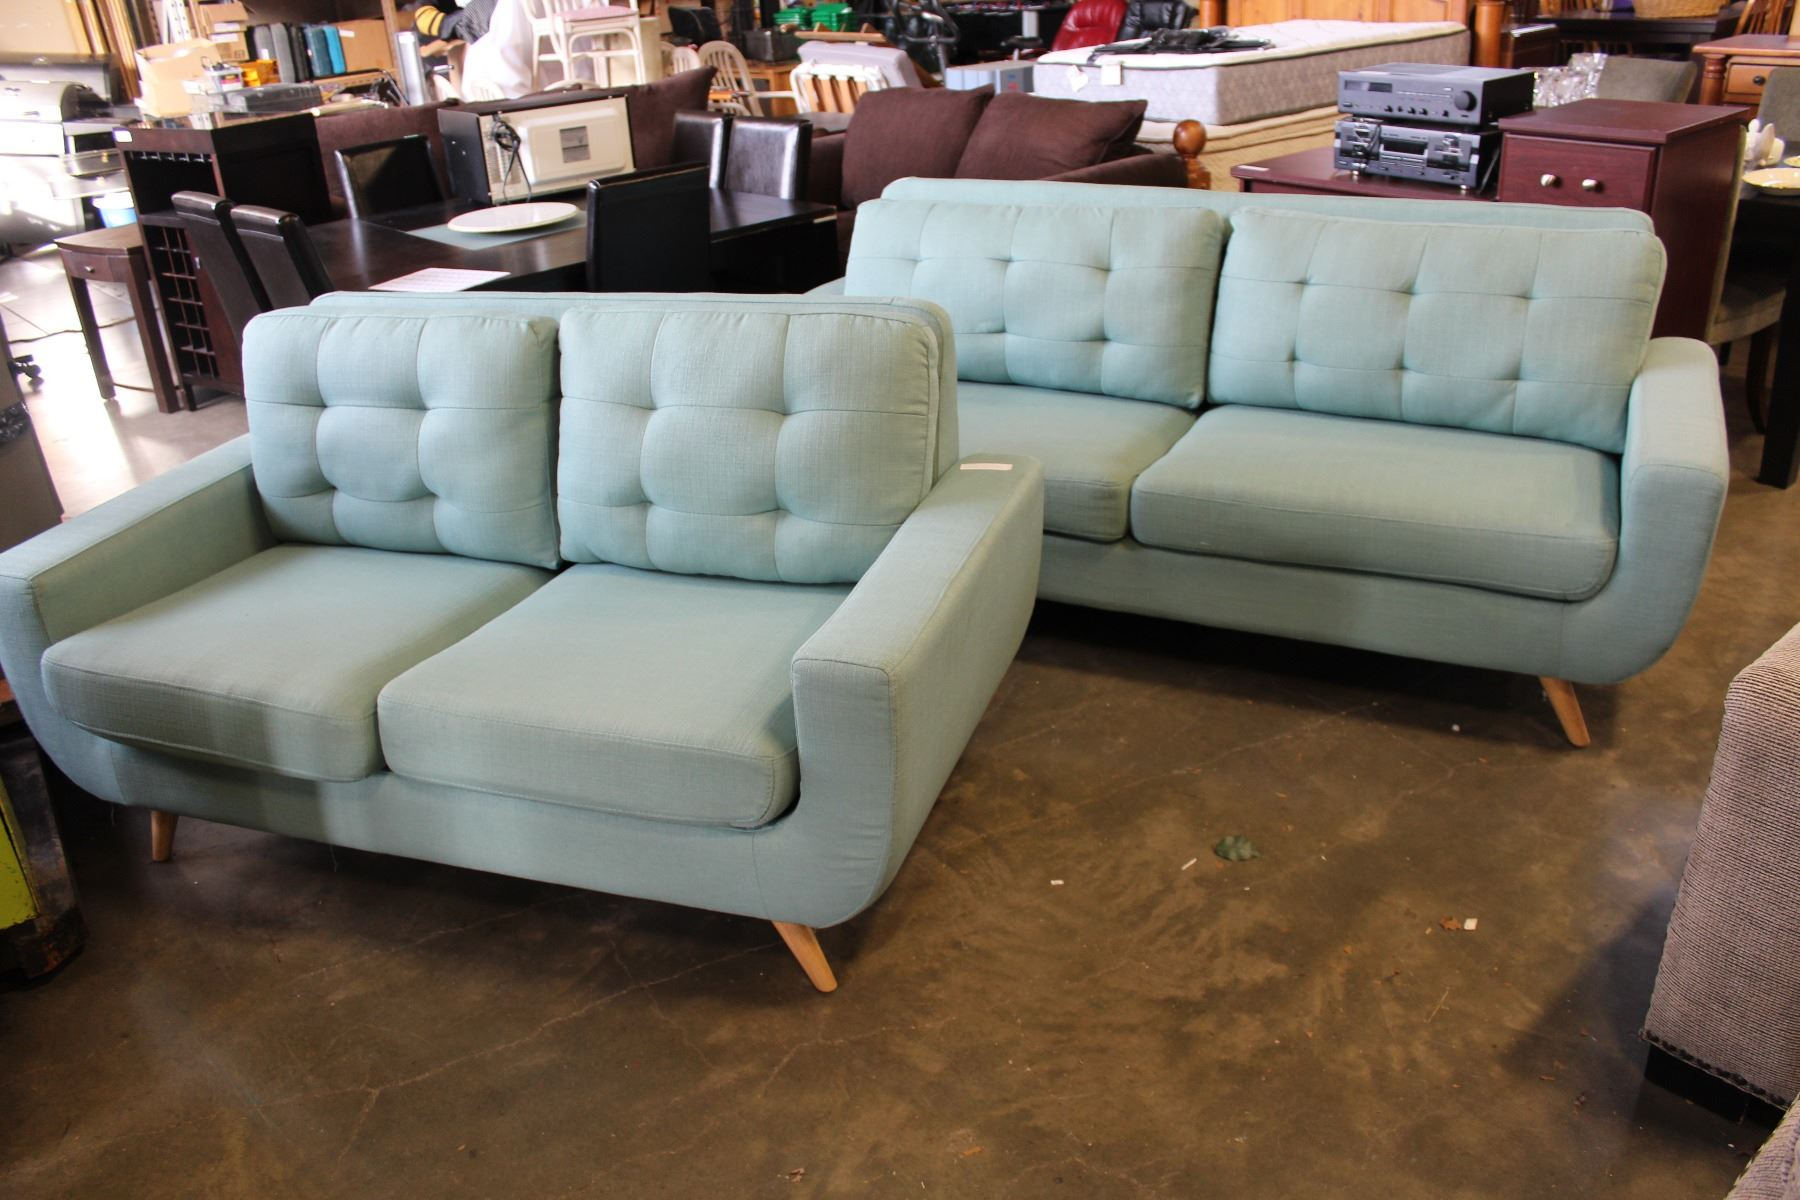 Floor model home elegance modern chenille tufted sofa and loveseat removable back cushions retail Chenille sofa and loveseat